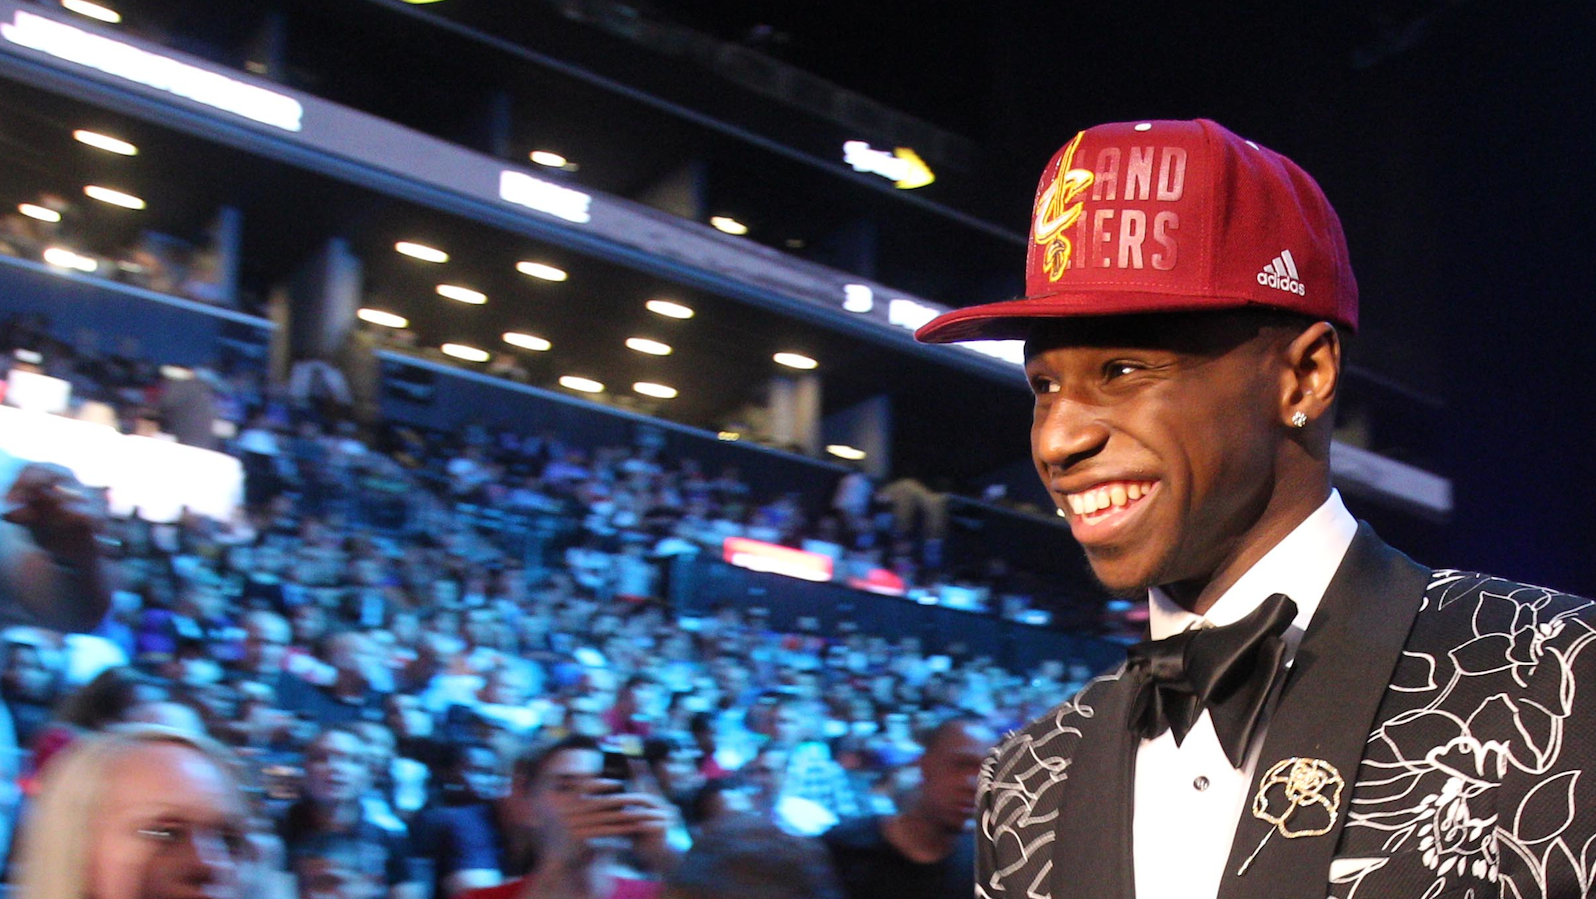 Andrew Wiggins at the NBA draft pick in Brooklyn on June 26, 2014. (Brad Penner-USA TODAY Sports)